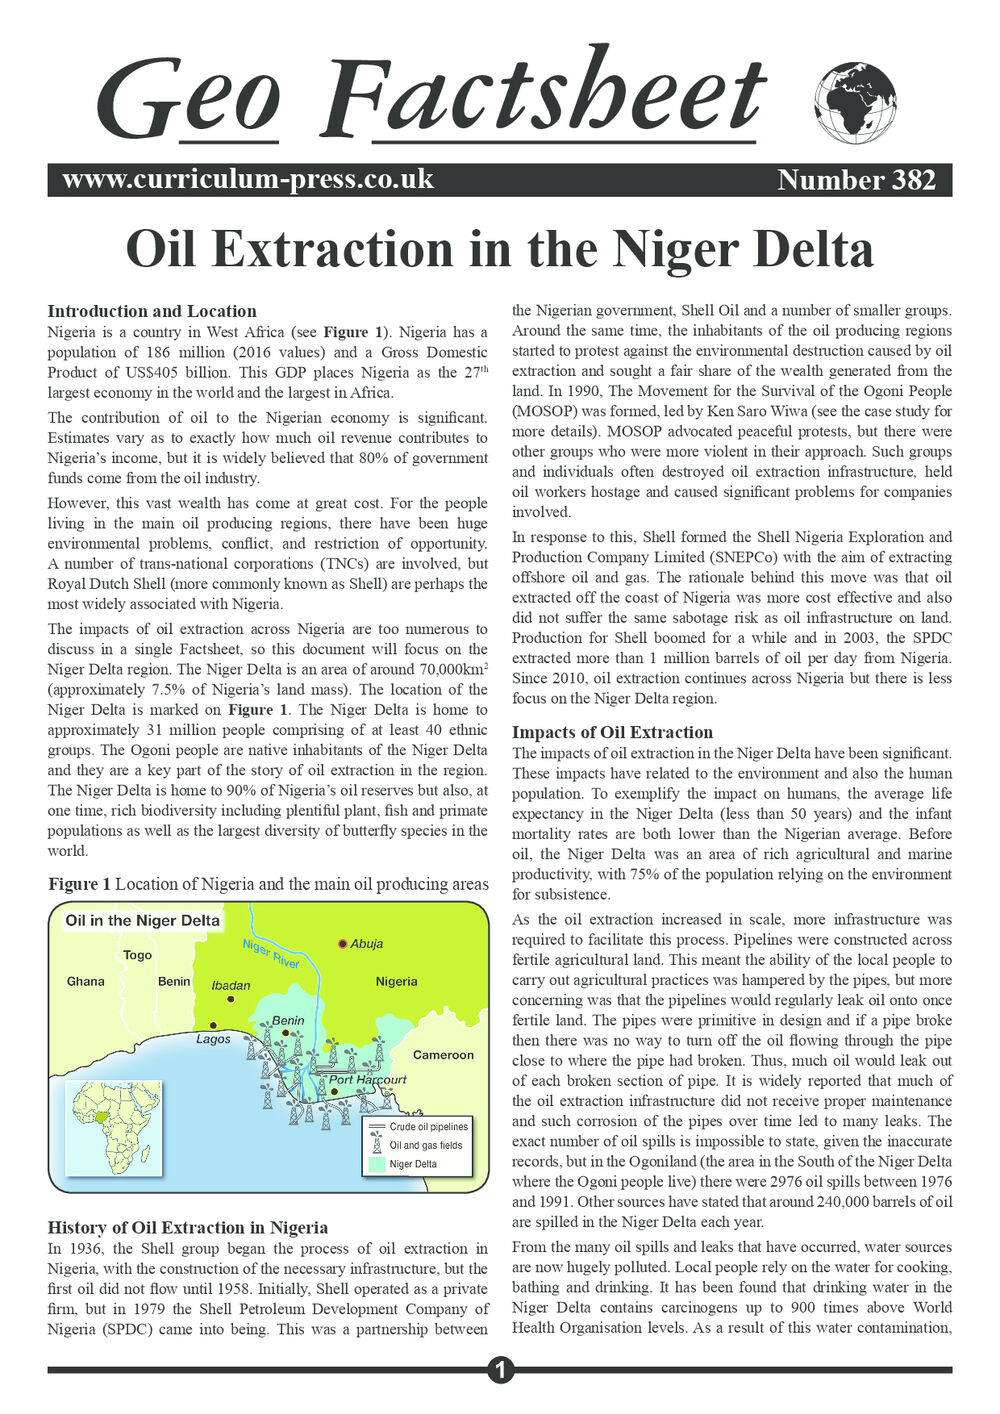 Oil Extraction in the Niger Delta - Curriculum Press